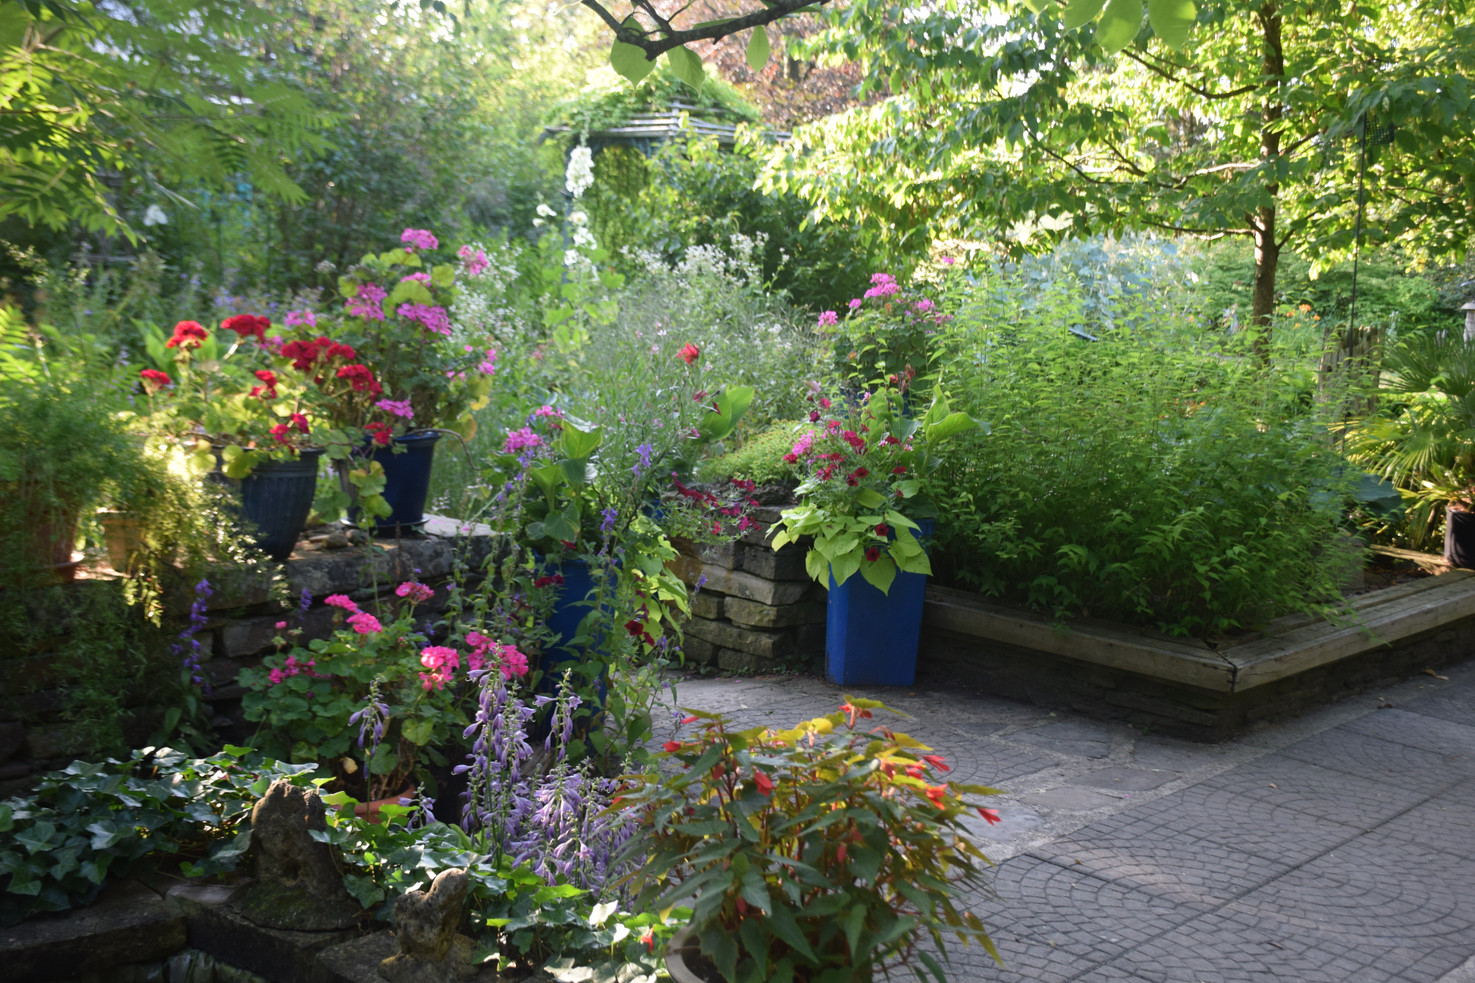 The house patio features many potted plants.